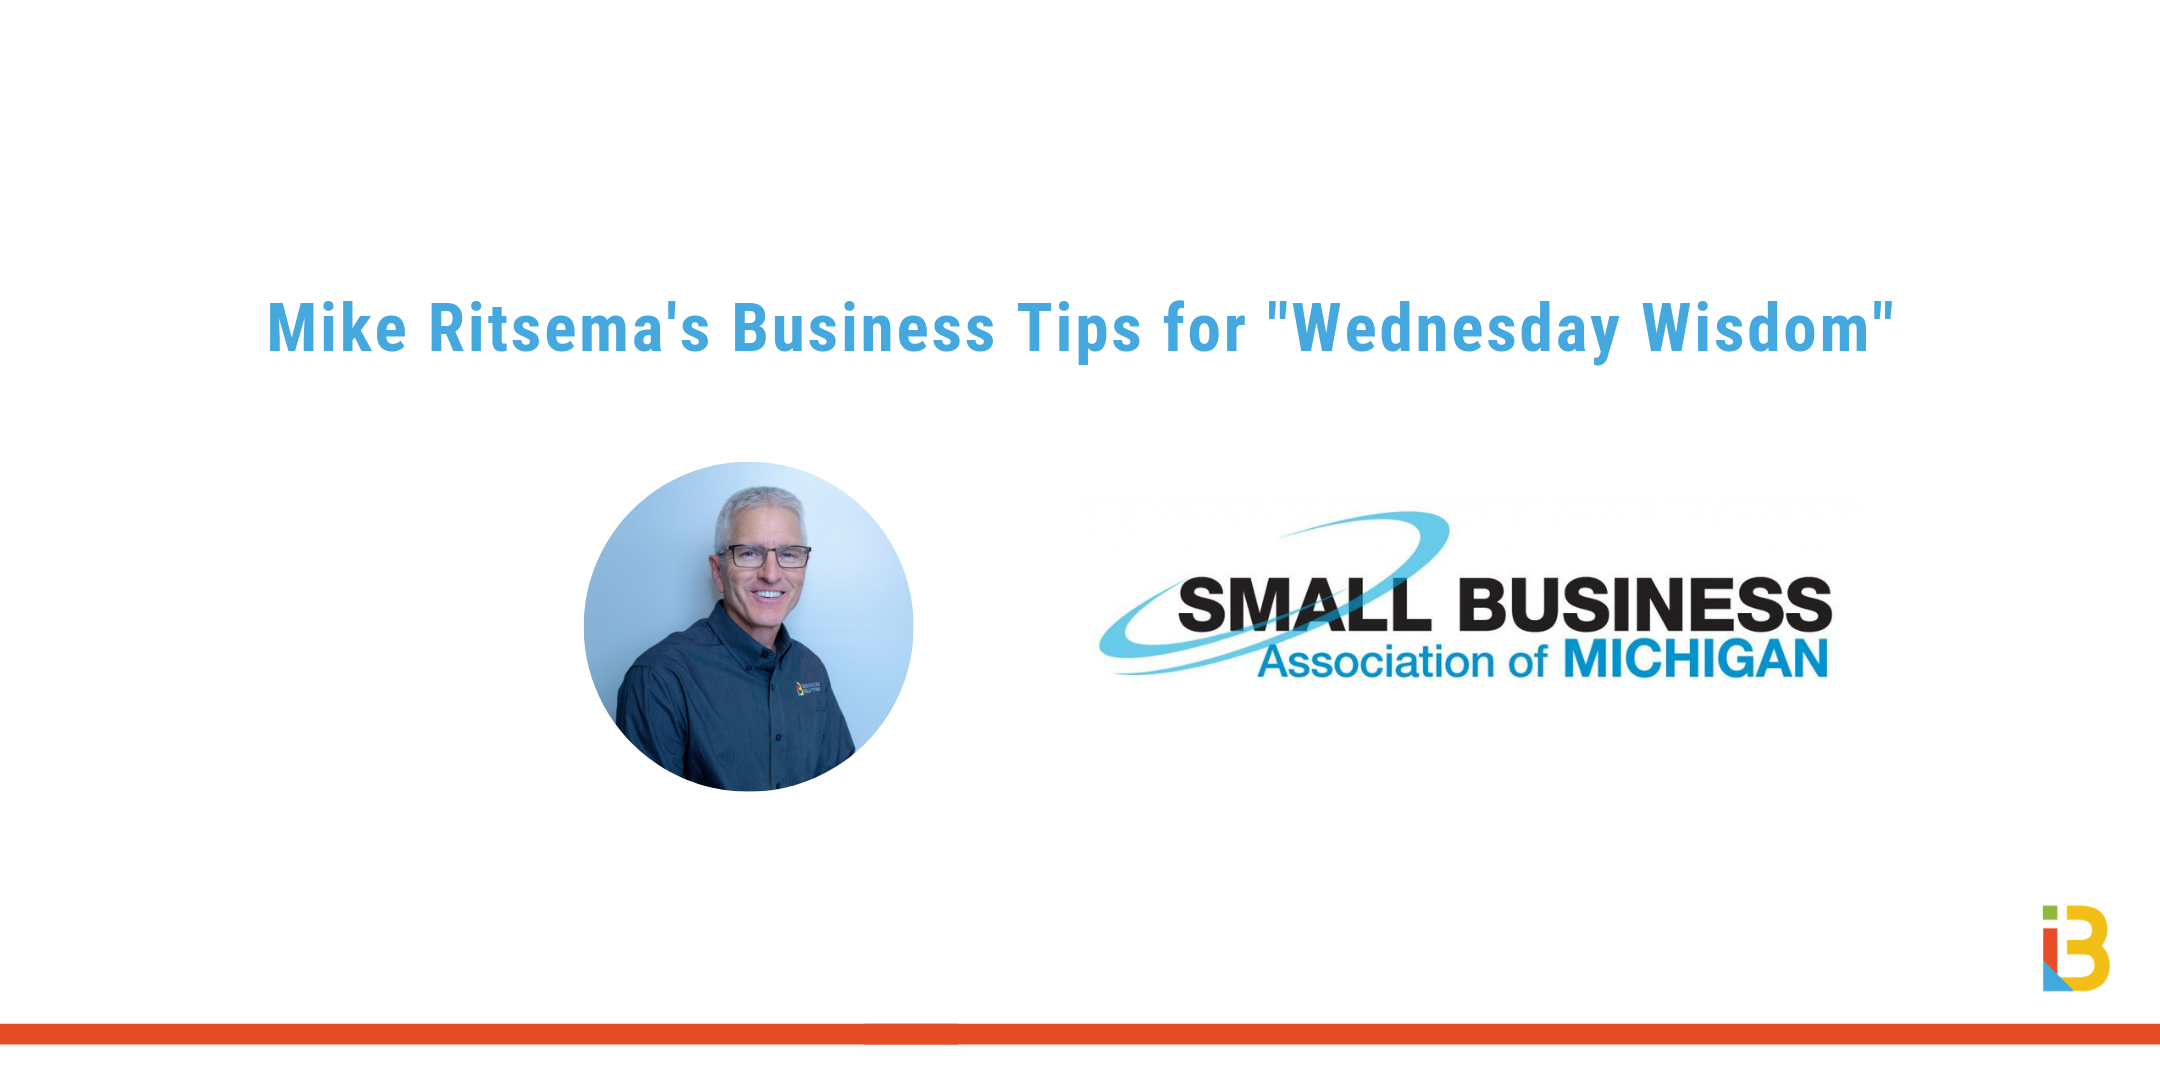 Mike Ritsema's business tips for Wednesday Wisdom